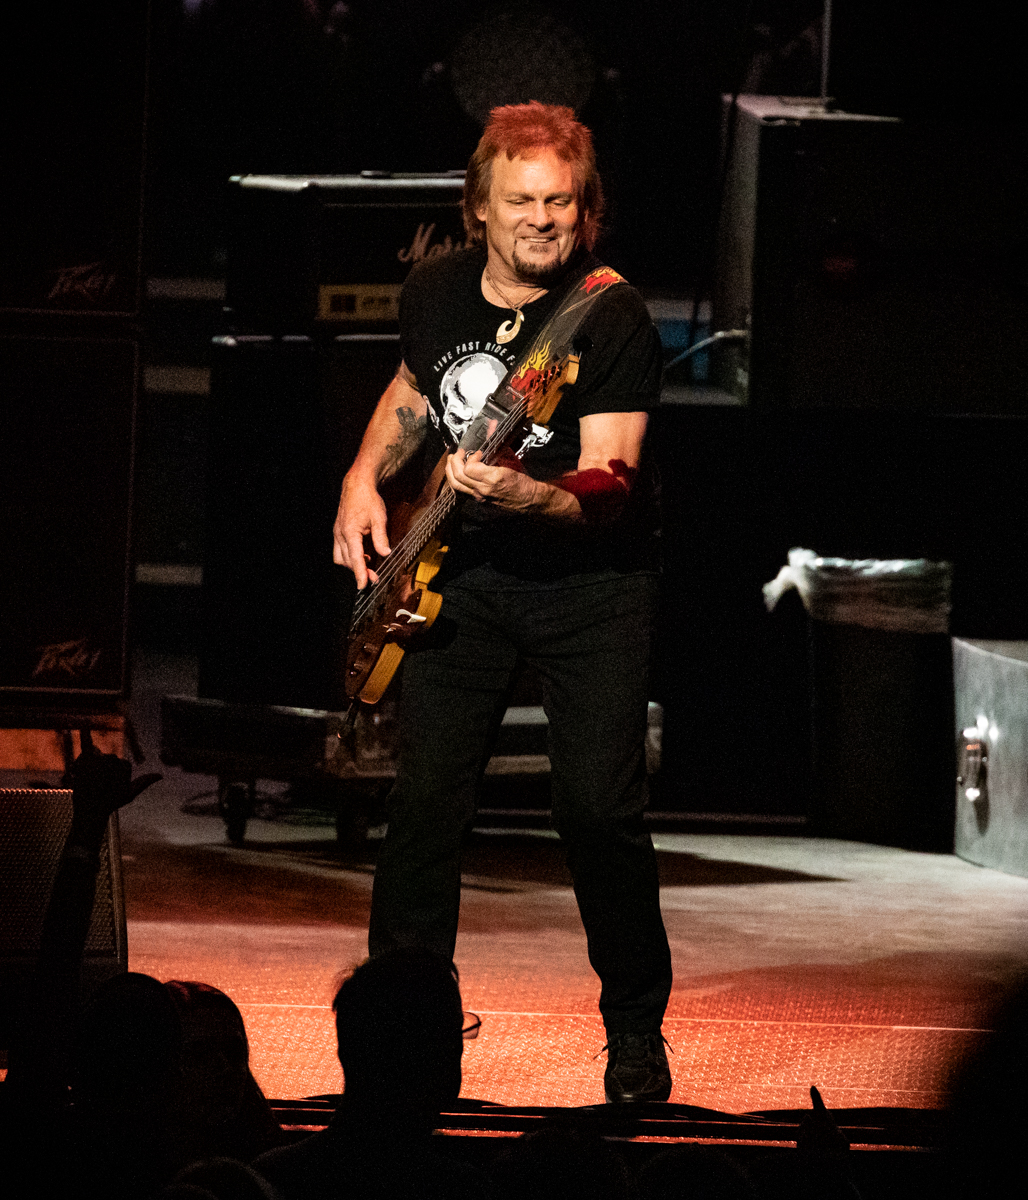 Michael Anthony of The Circle performs at Hollywood Casino Amphitheatre in Tinley Park, IL on 06/07/2019.